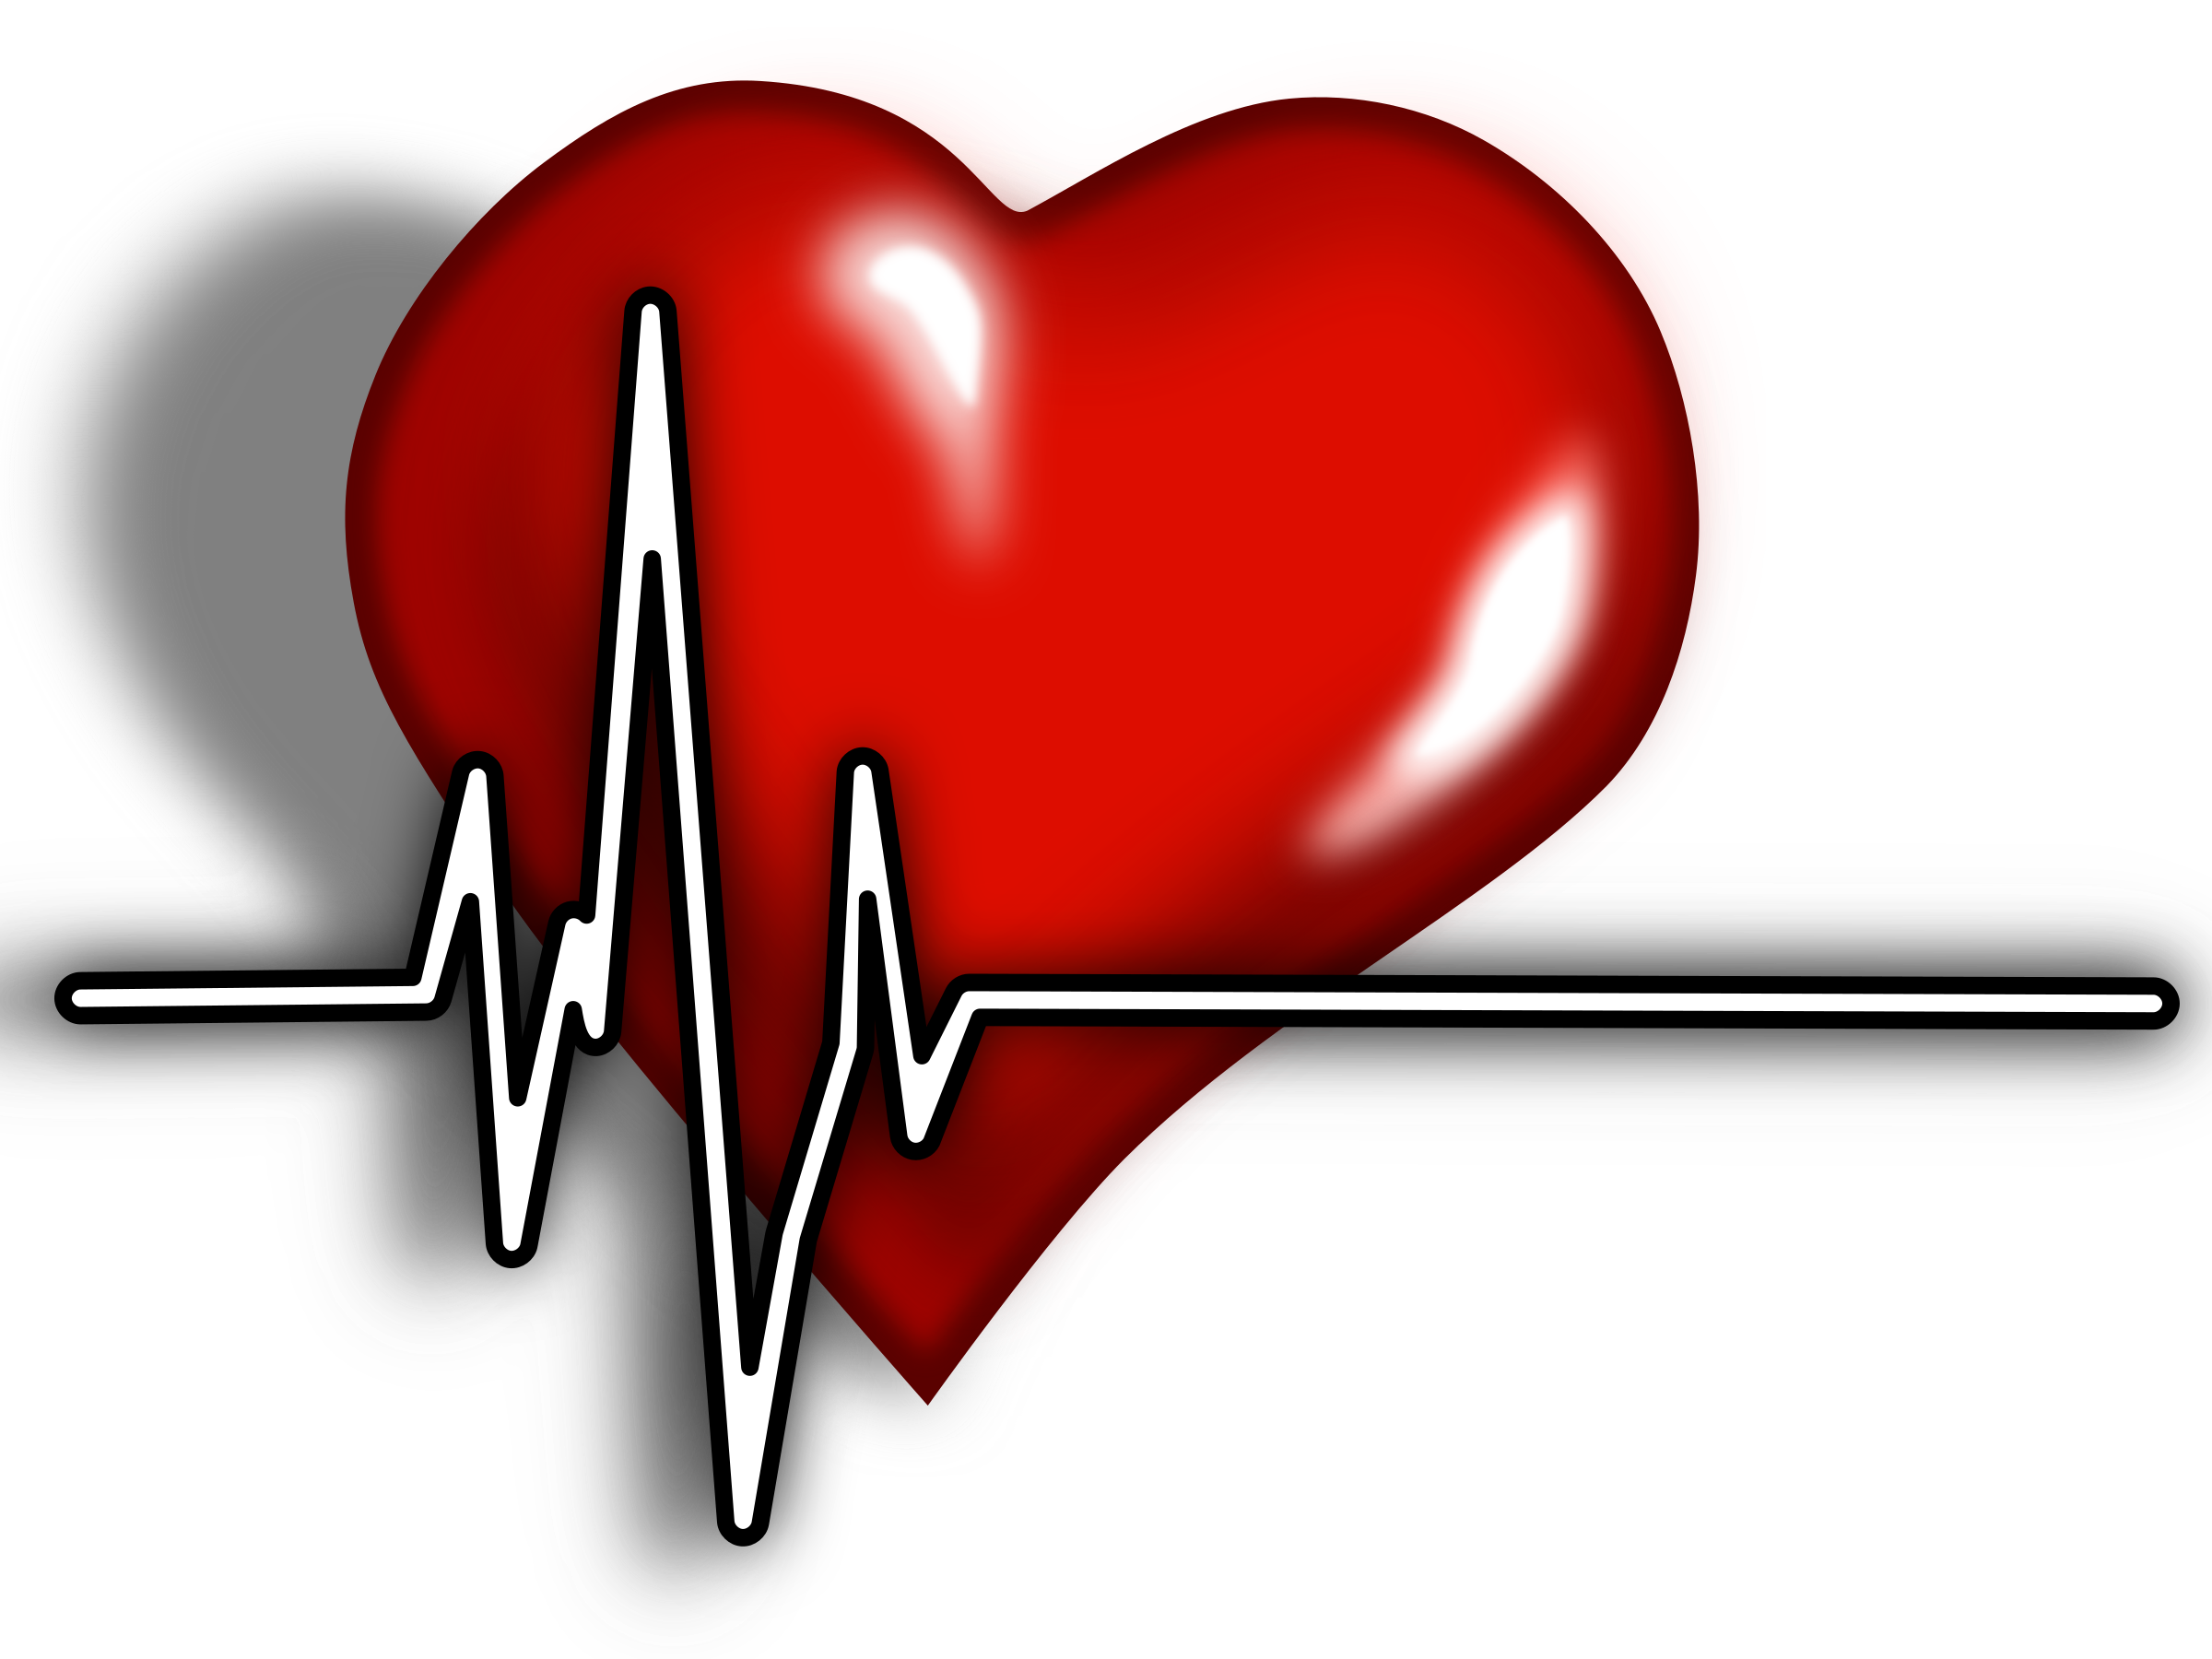 Health clipart medical mission. Heart ecg logo big